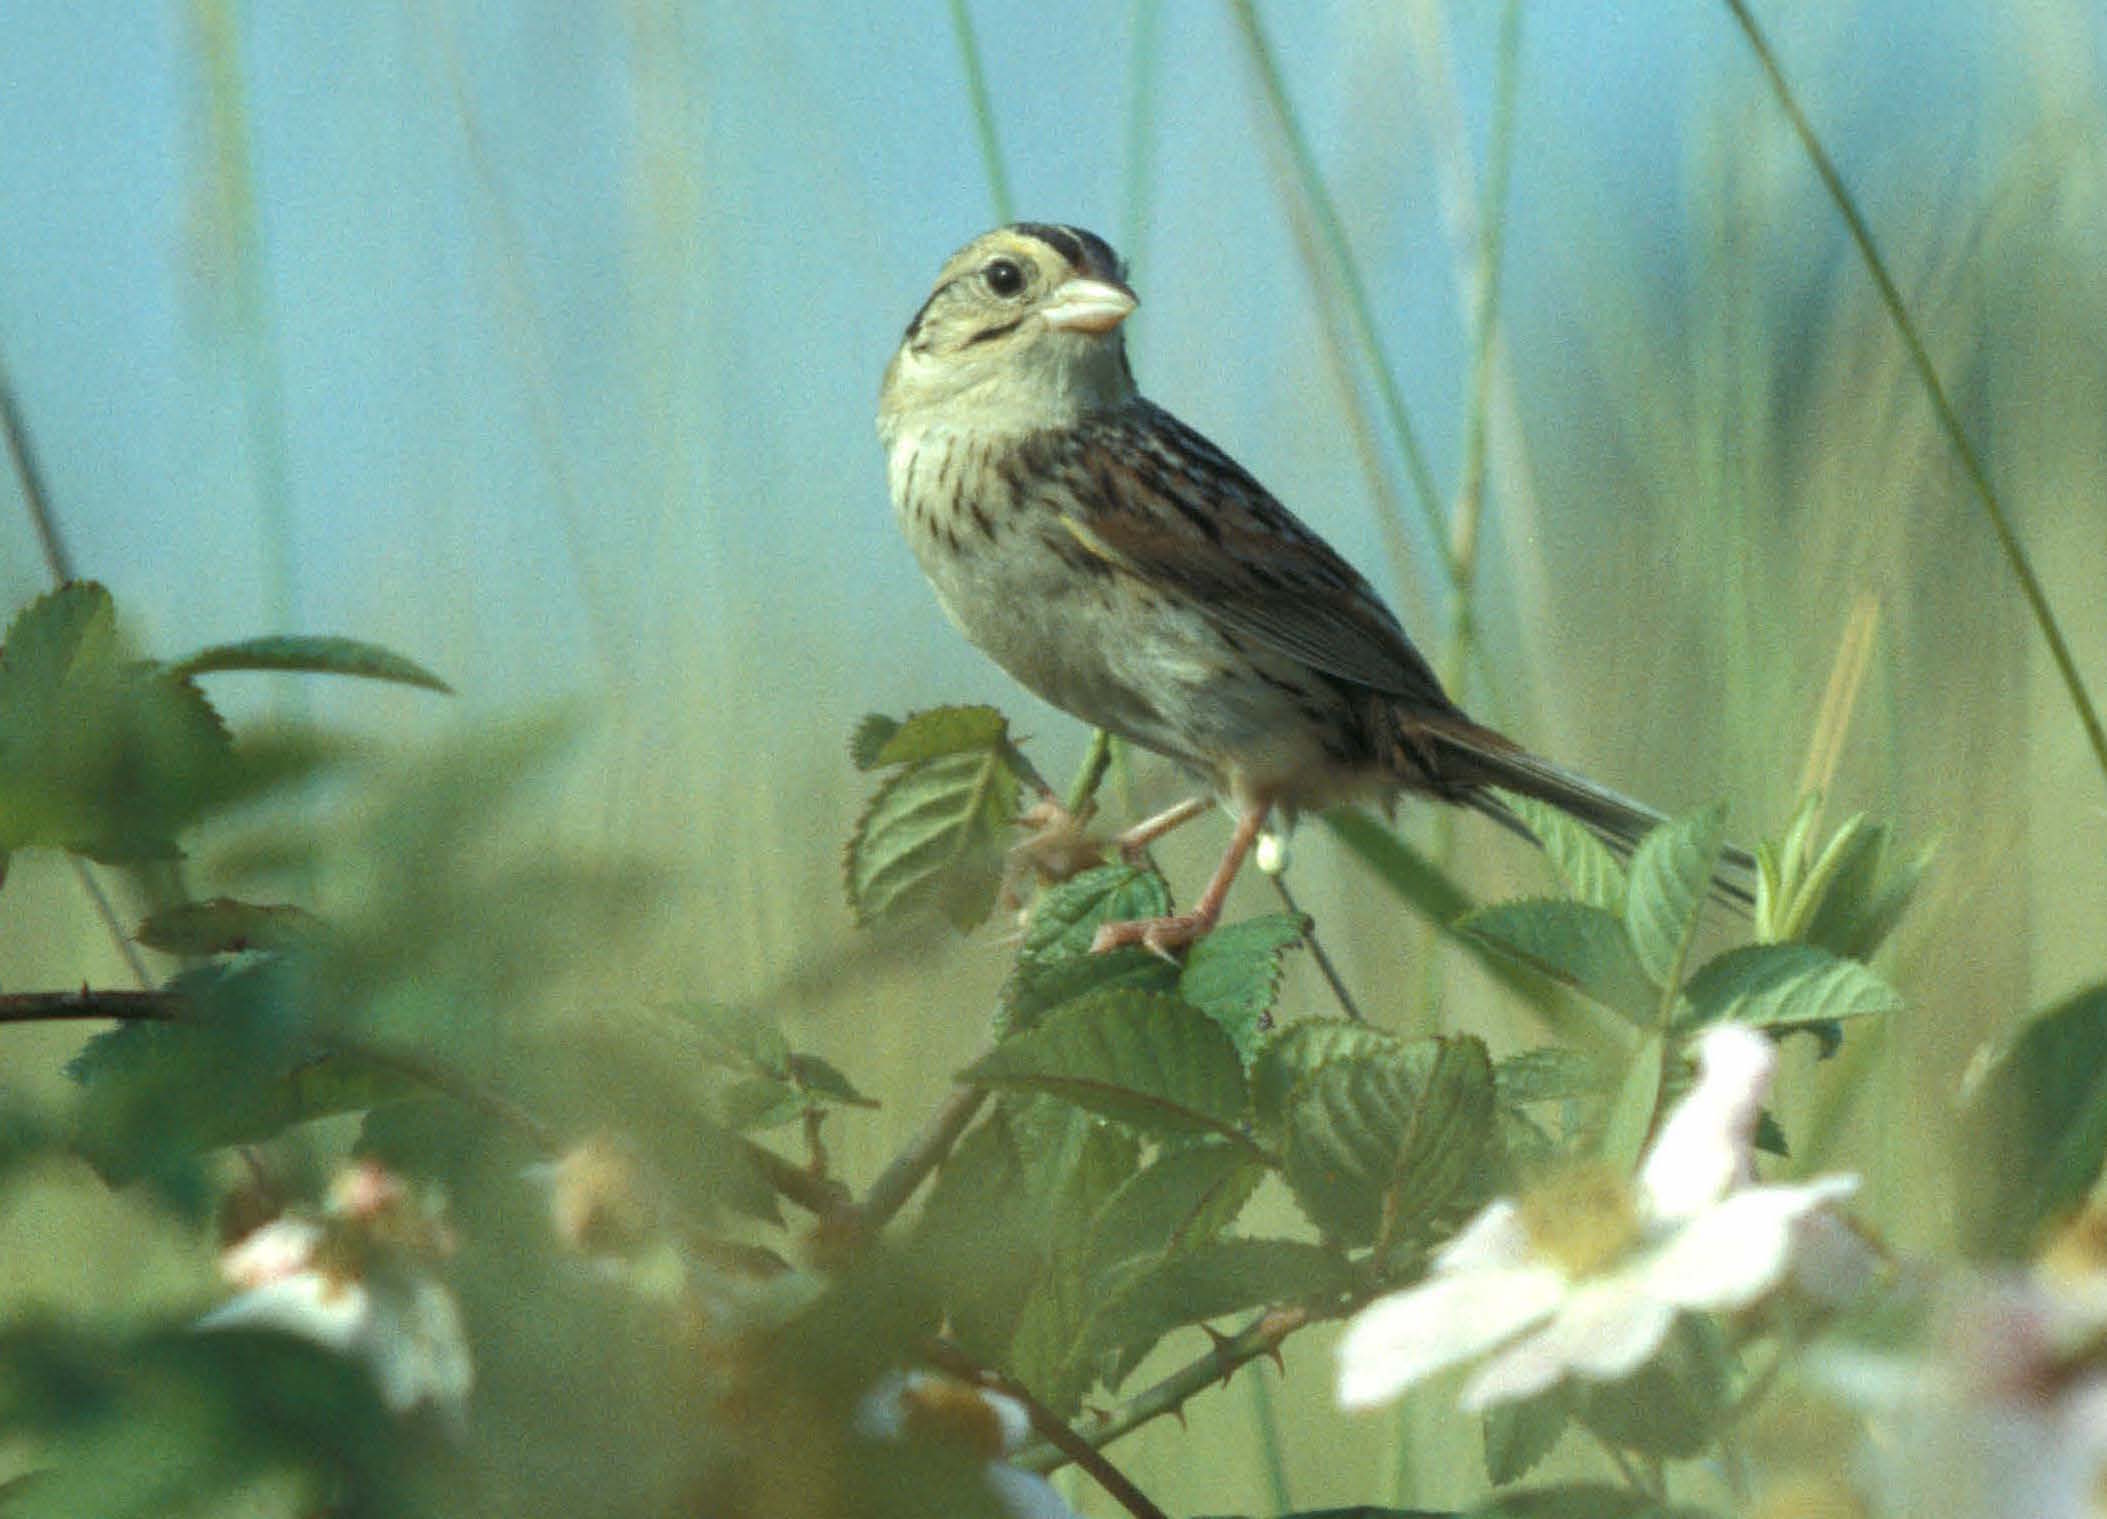 Lesson 3. If we rebuild them, they will come... - Many rare species that are in severe decline throughout their ranges are rebounding in the Chicago area thanks to the increase in high-quality grassland conservation efforts. Let's bring similar efforts to the SGI focal area.